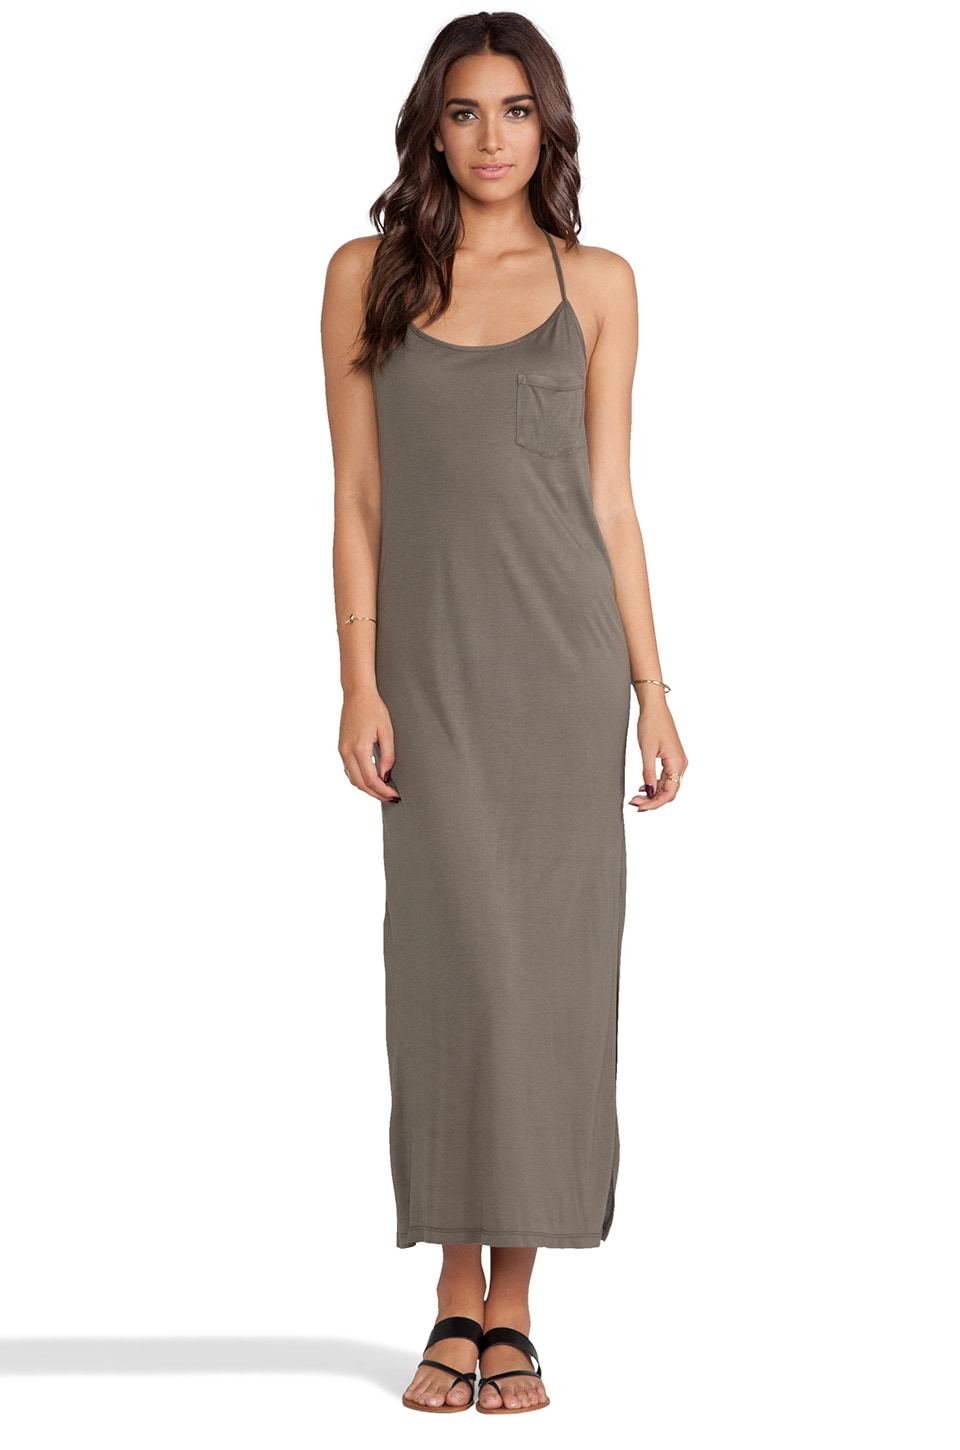 Haute Hippie Racerback Gown in Military